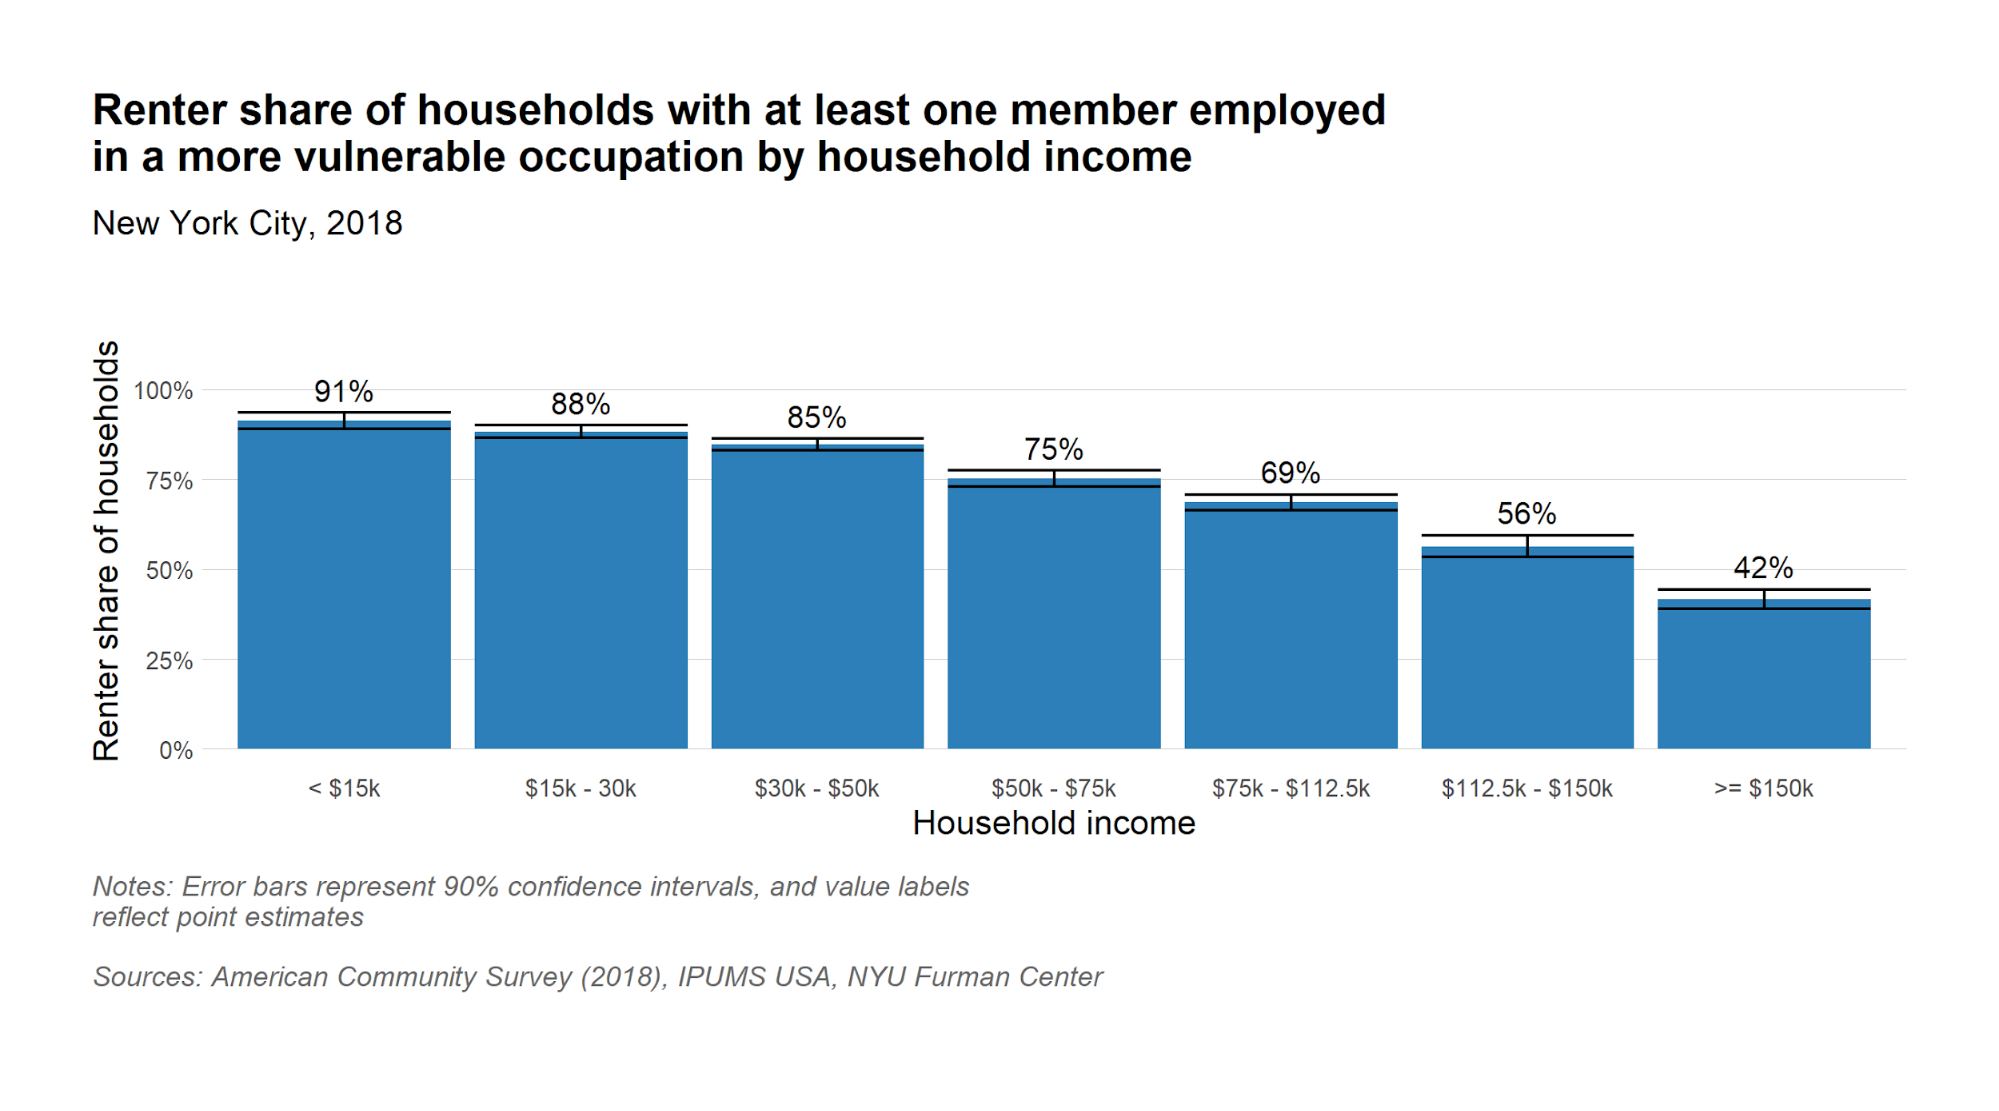 Renter share of households with at least one member in vulnerable occupation by household income